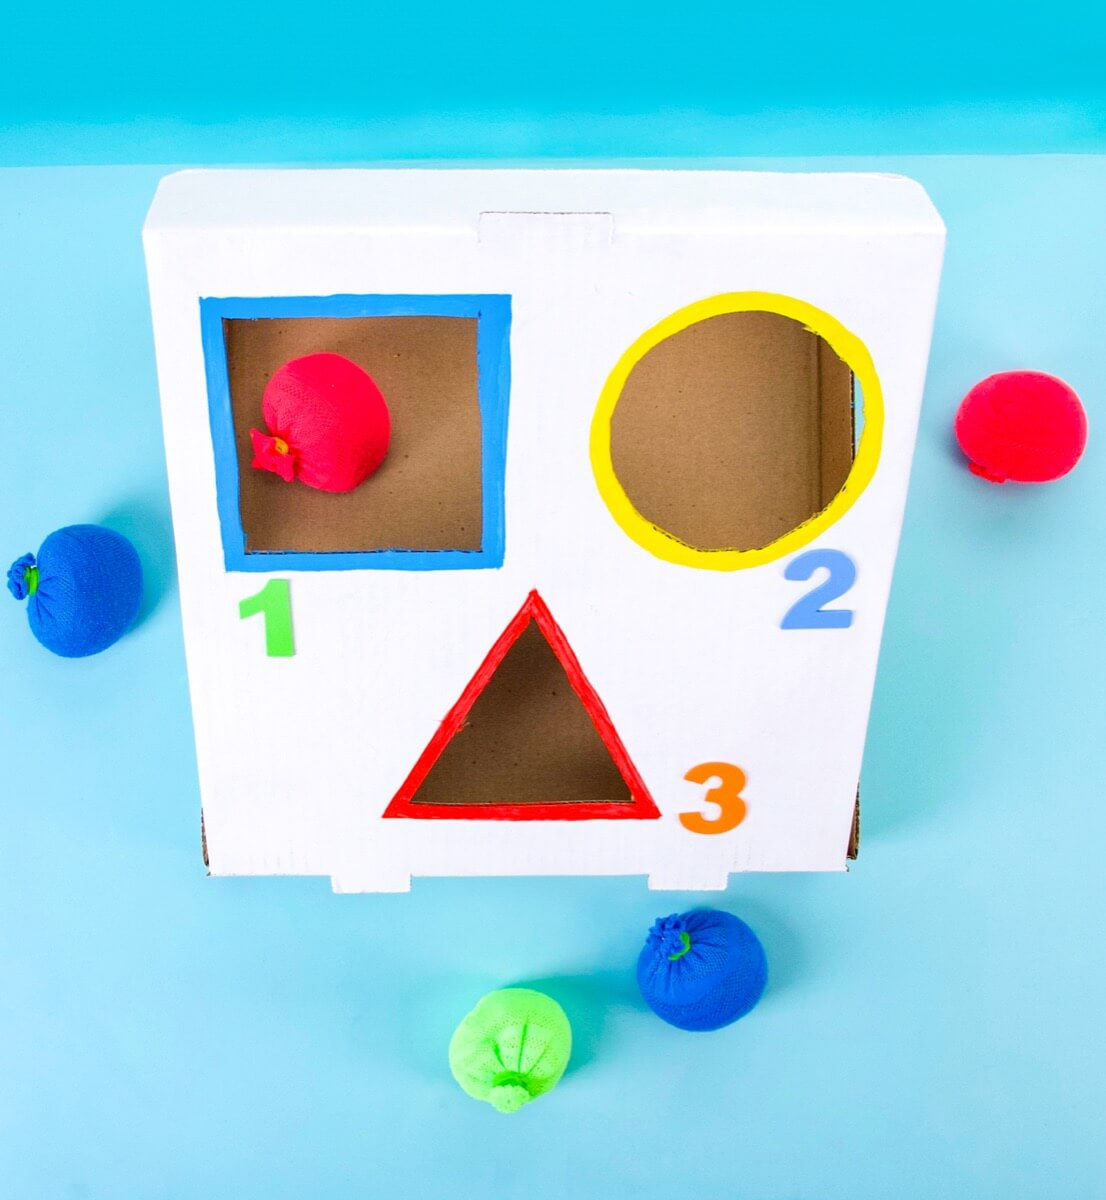 Ten Make-And-Learn Activities from Super Simple